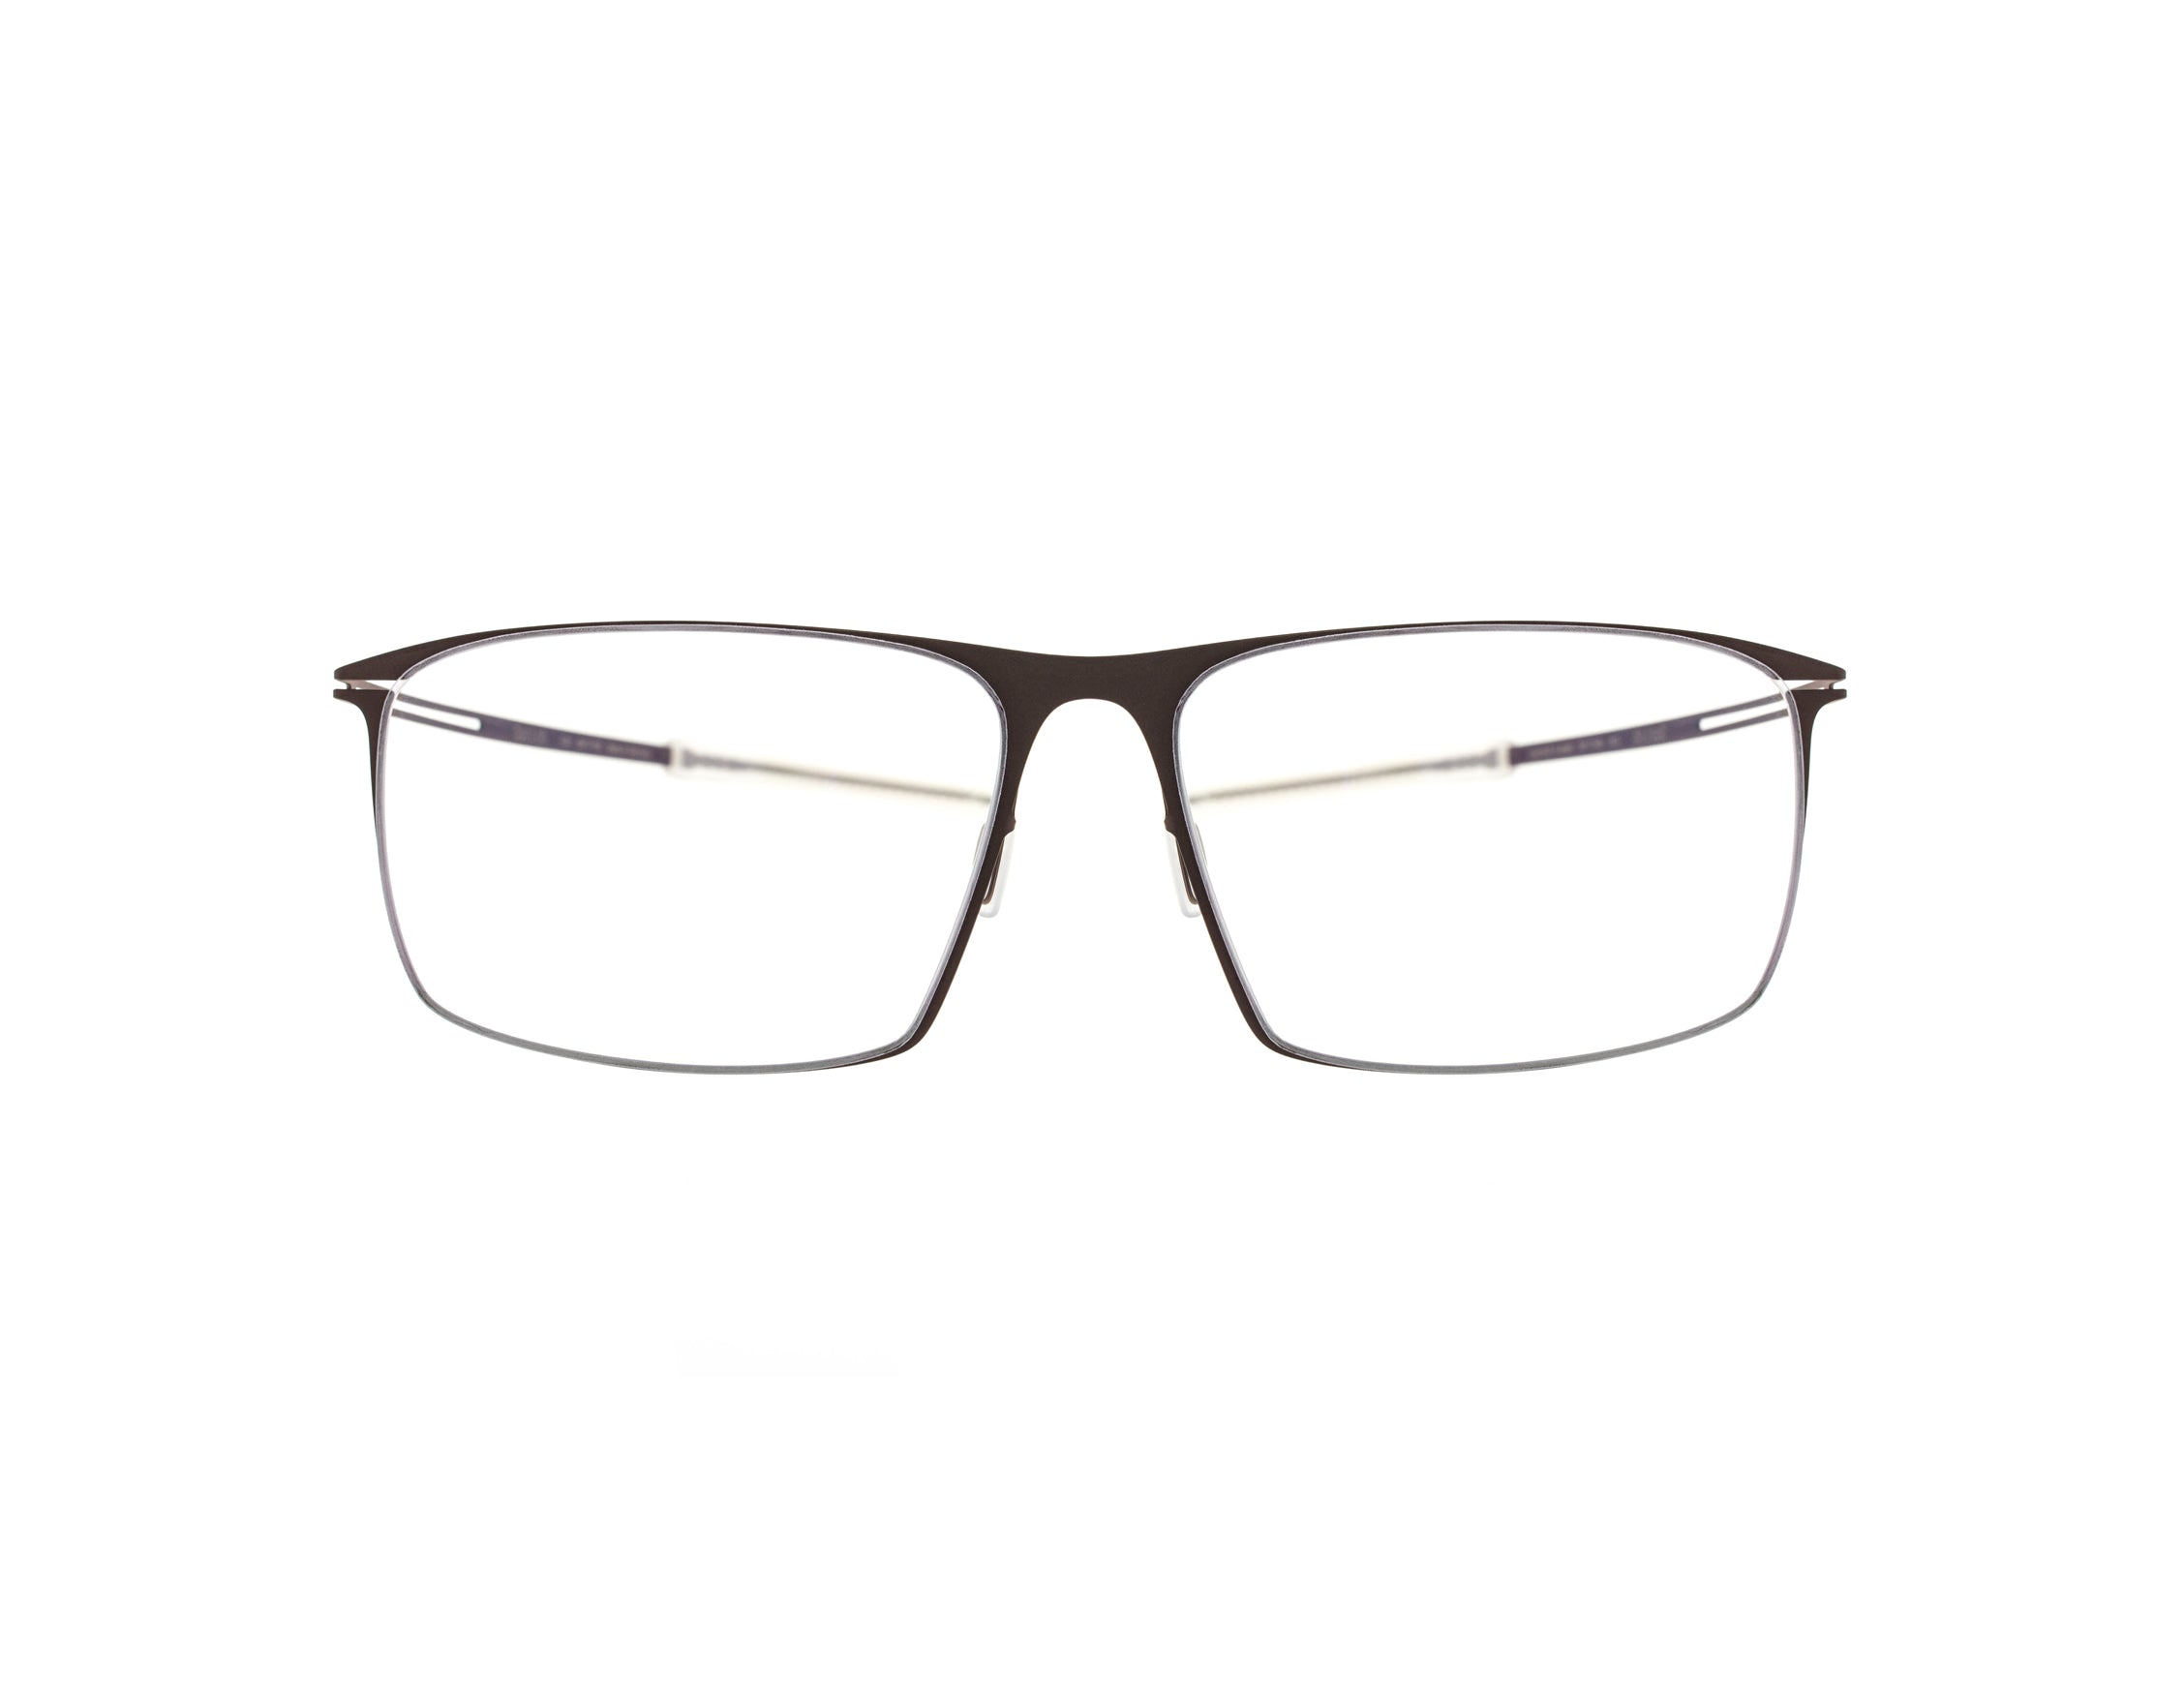 ONE by Thomsen Eyewear -  Zurich col. 01